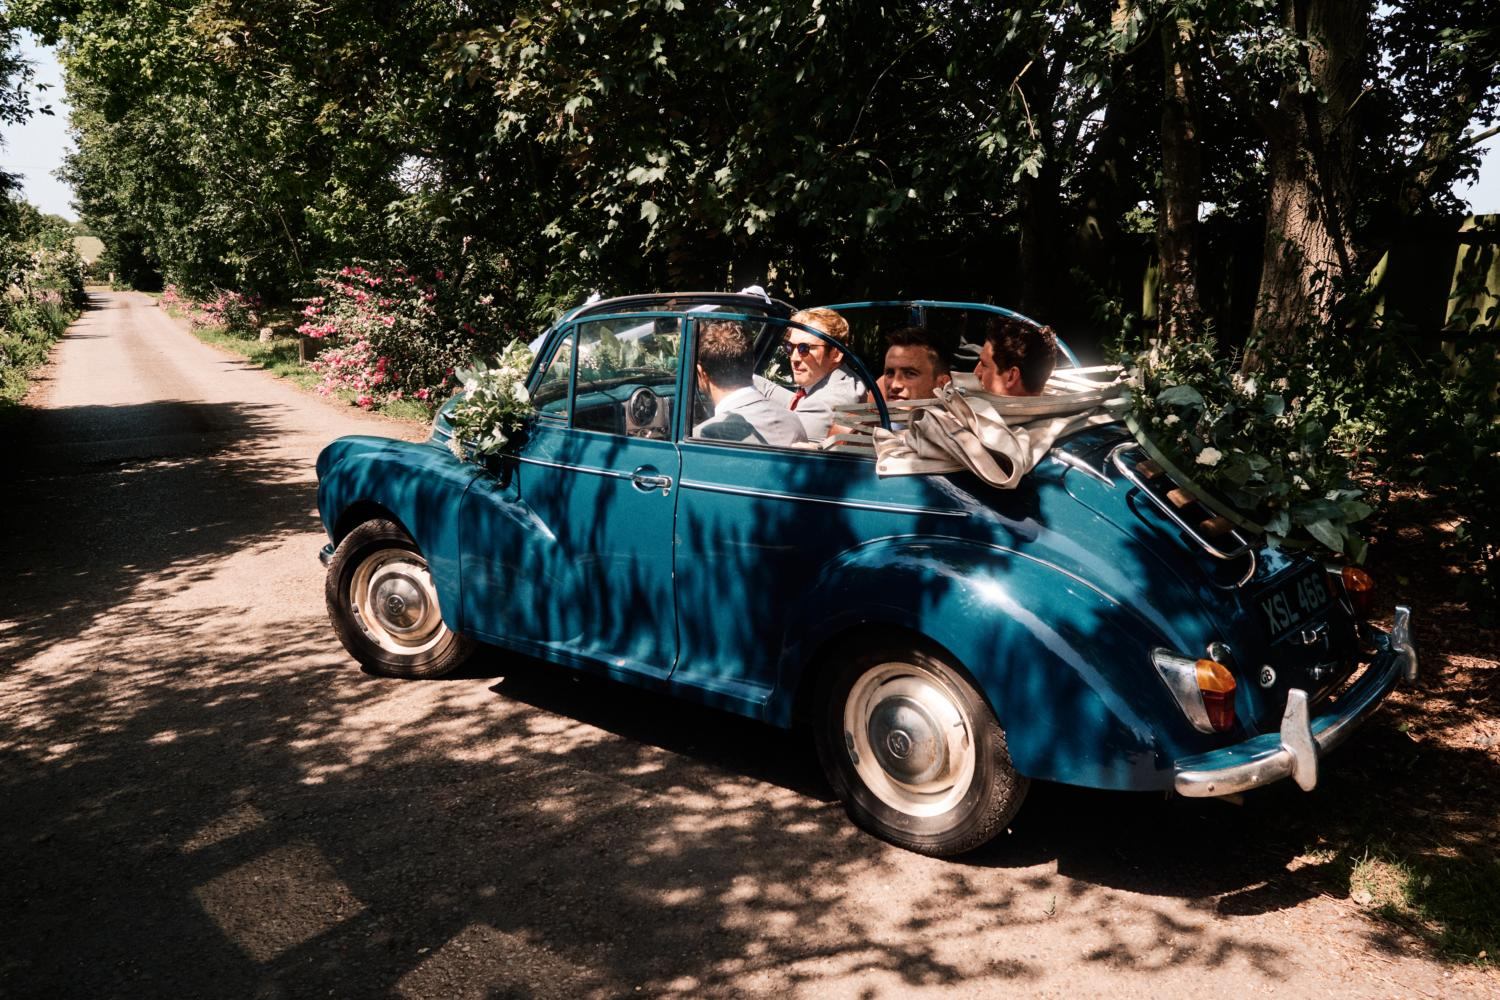 Groom and friends drive away in a blue convertible vintage car